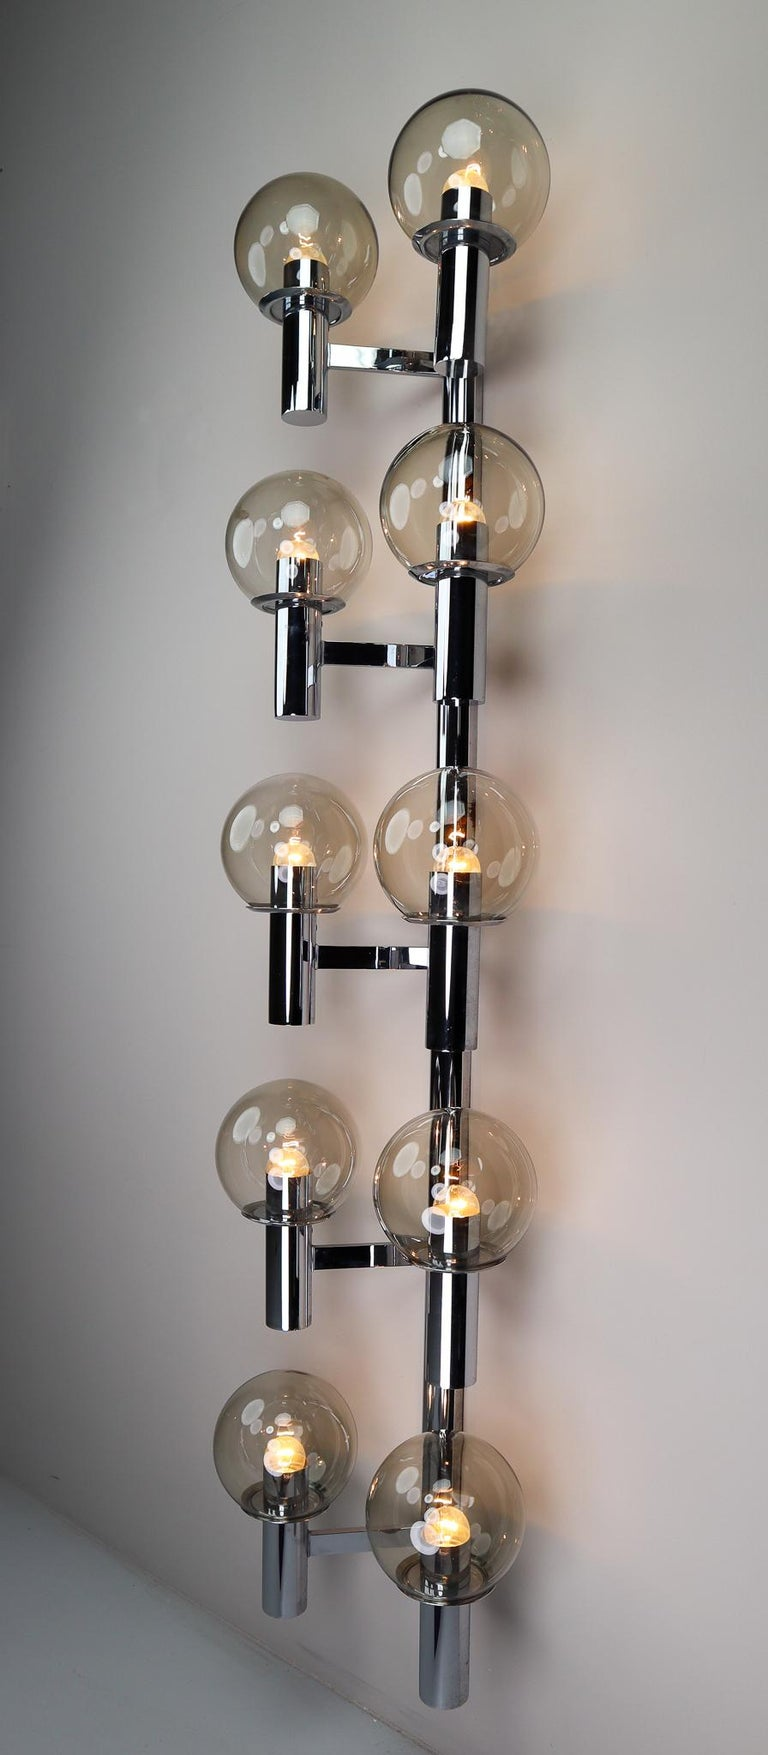 Large Mid-Century Modern Chrome Wall lights / Sculptures, Italy, 1970s For Sale 4